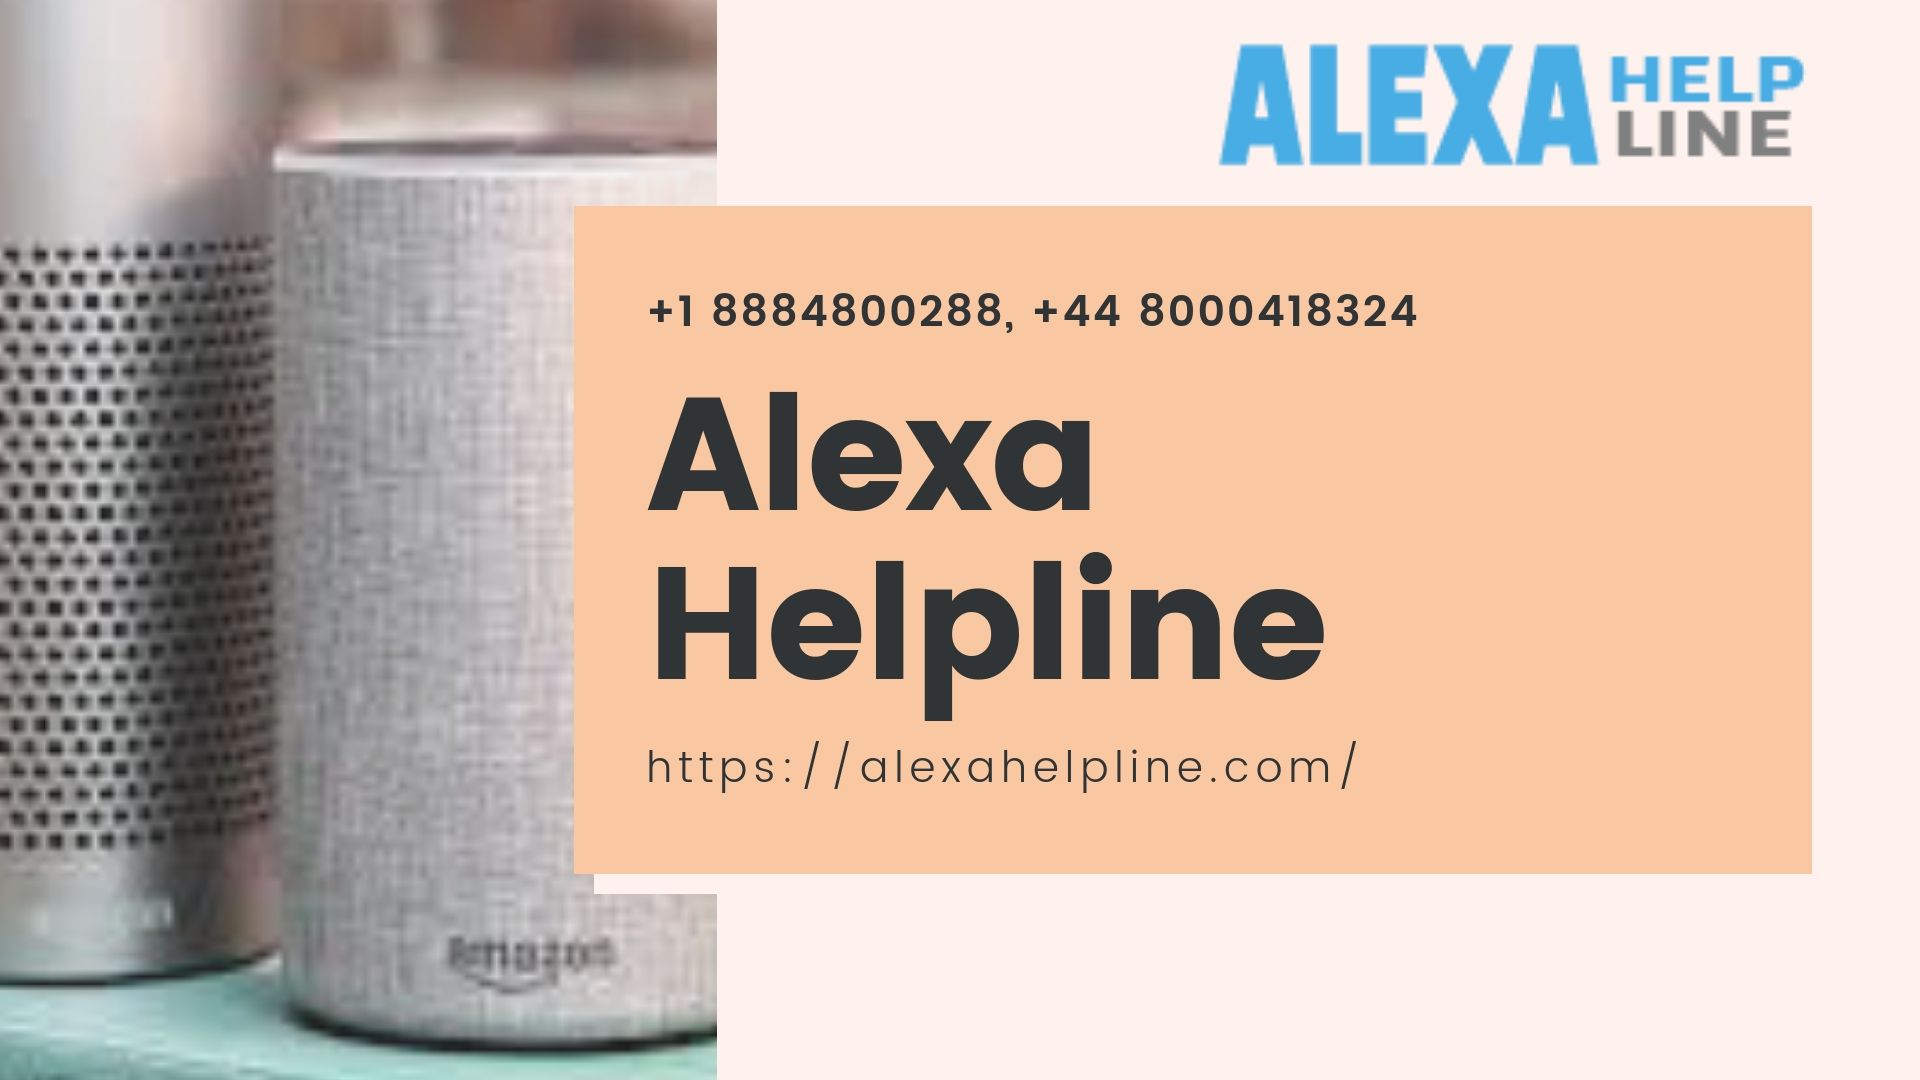 Wants to setting up multiple Alexa devices on the same